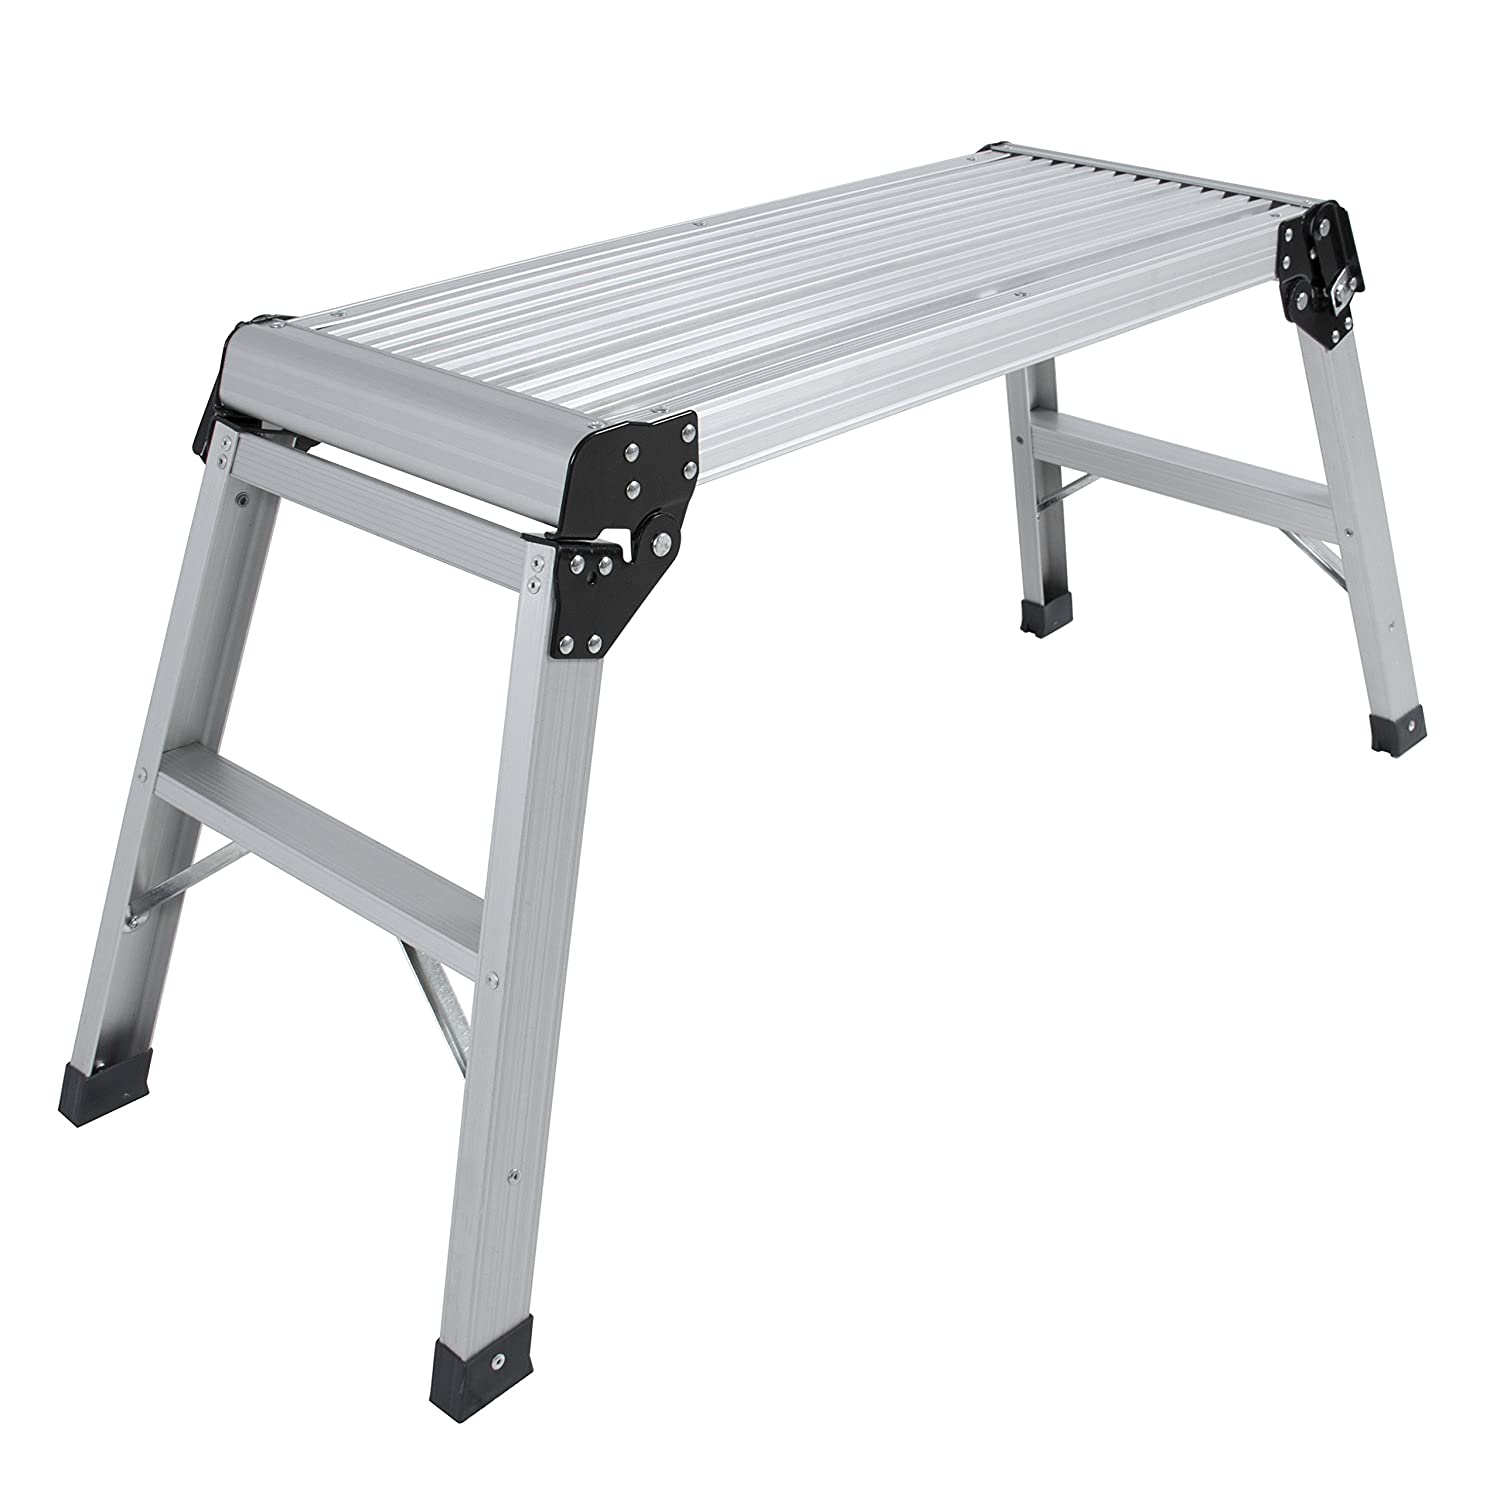 Best Choice Products Aluminum Platform Drywall Step Up Folding Work Bench Stool Ladder - - Amazon.com  sc 1 st  Amazon.com & Best Choice Products Aluminum Platform Drywall Step Up Folding ... islam-shia.org